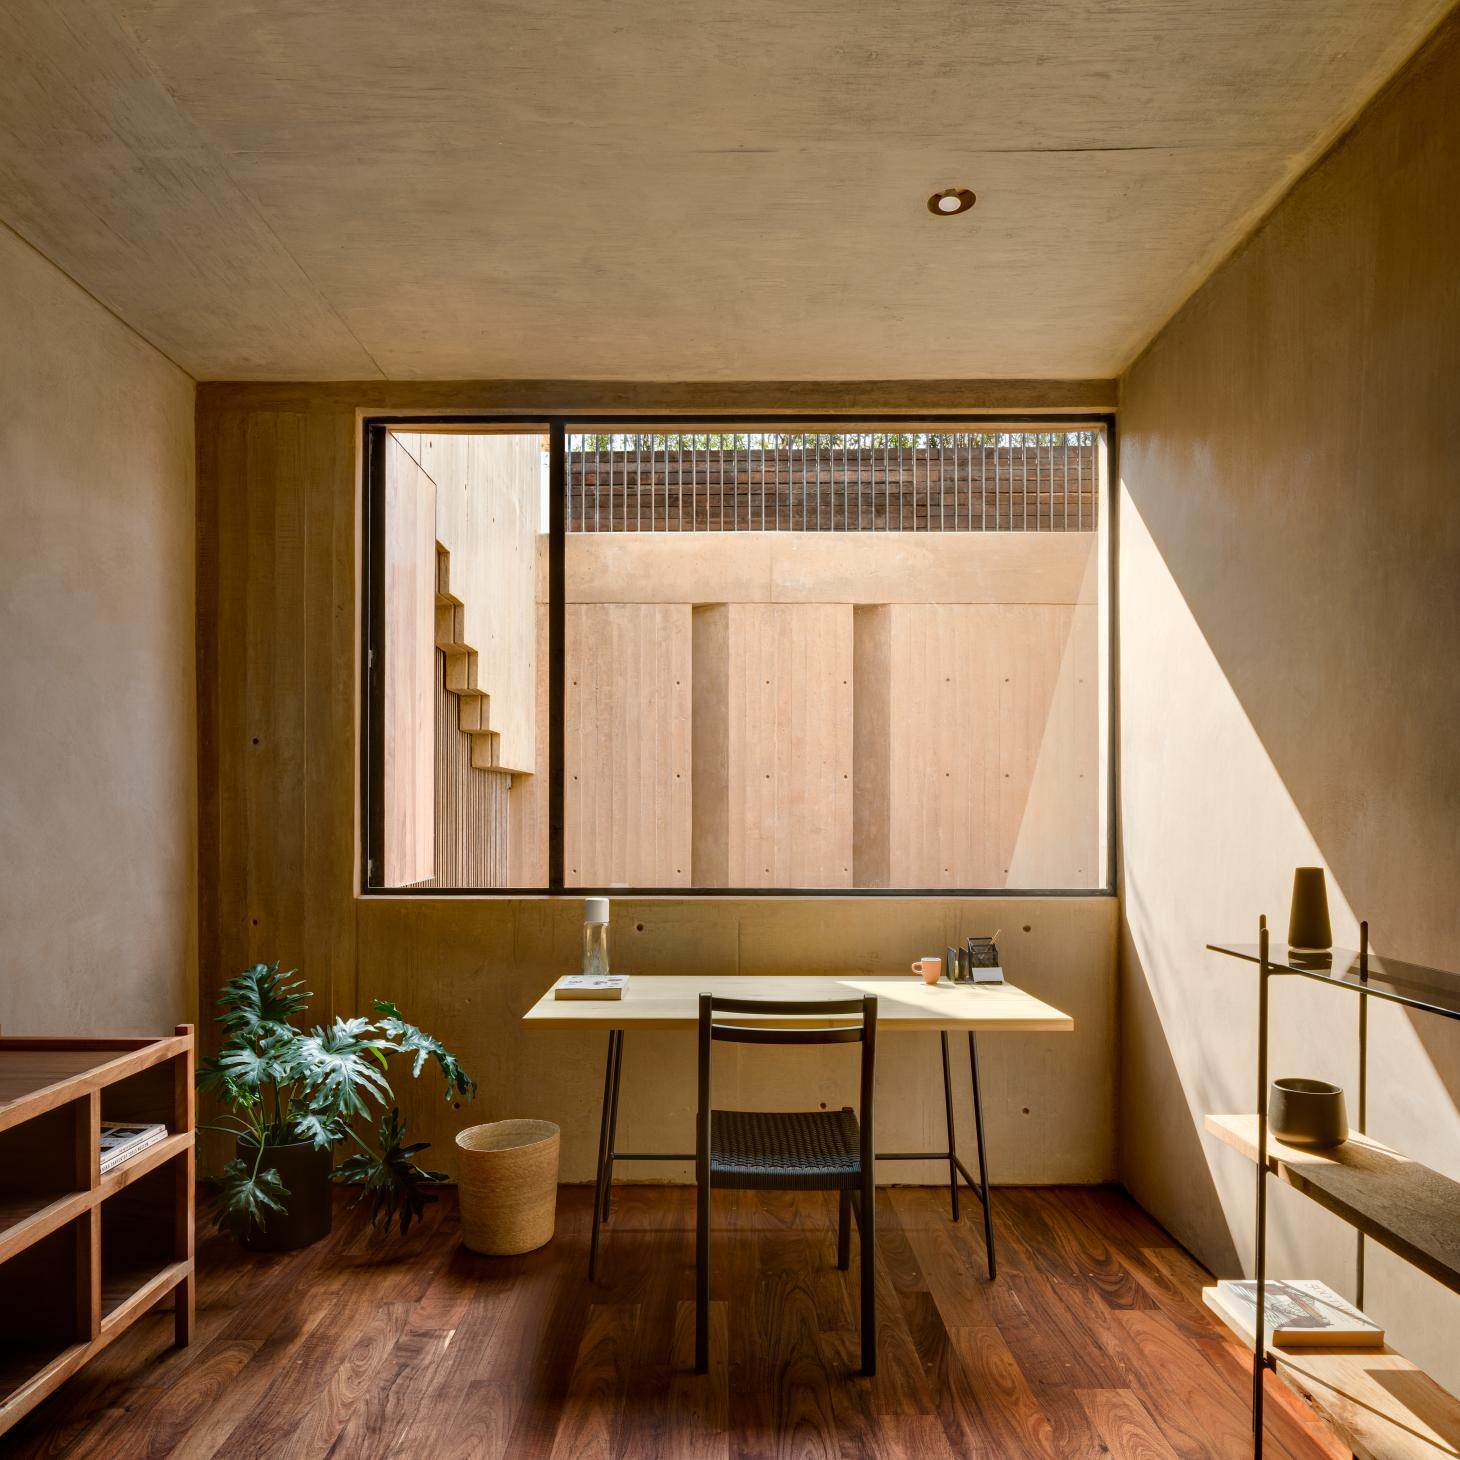 IGNANT-Architecture-Taller-Hector-Barroso-LC710-1